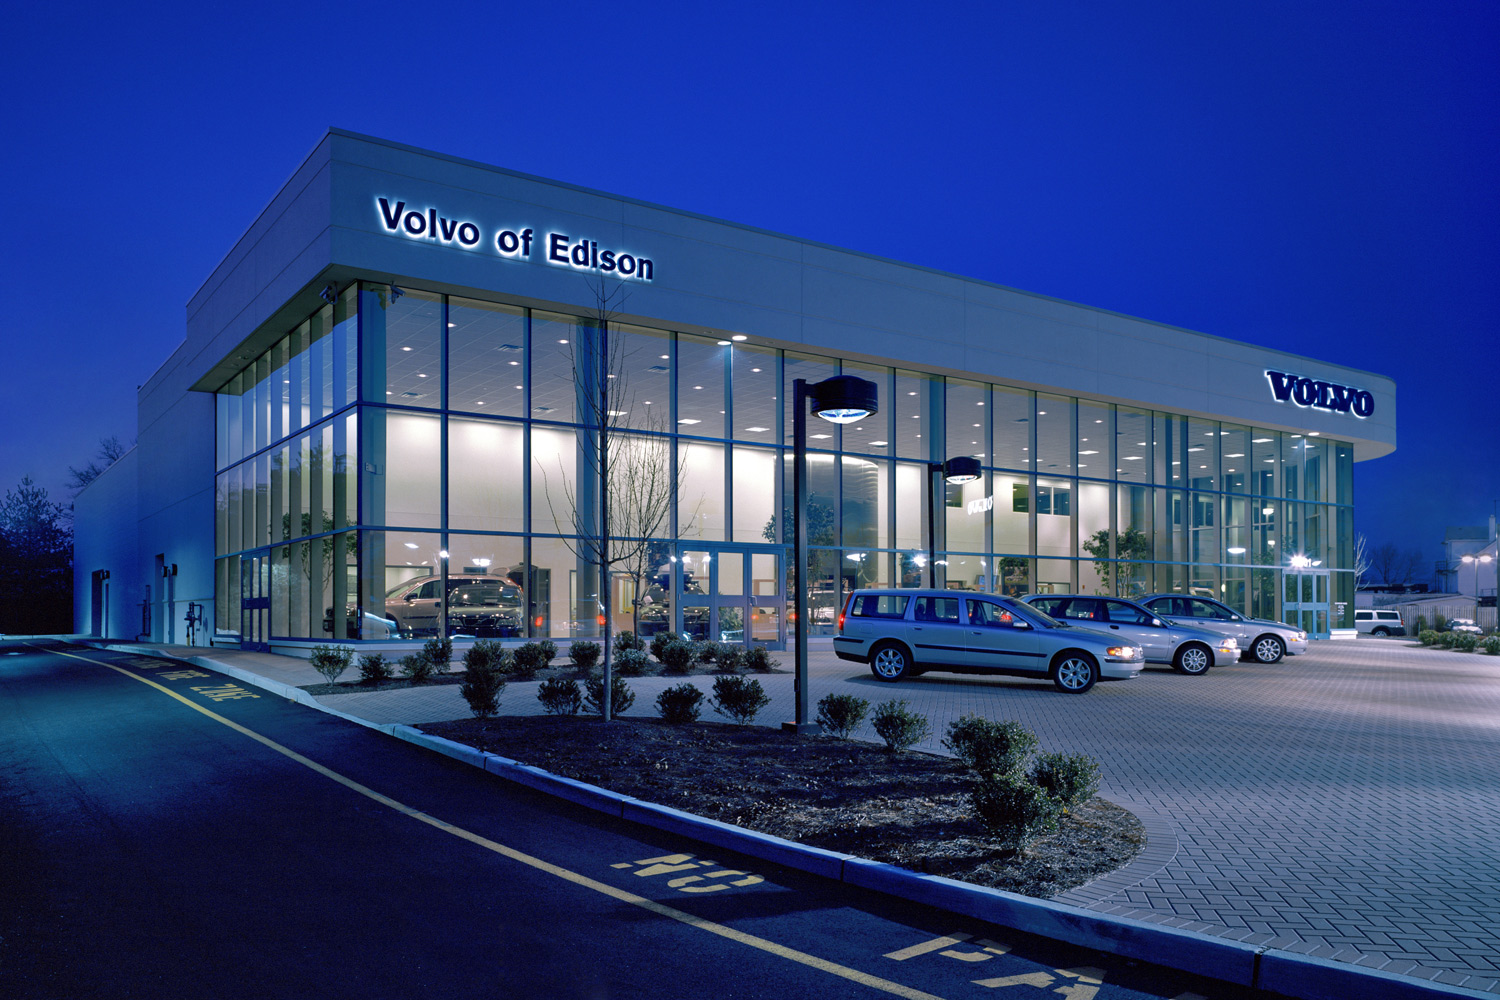 Volvo of Edison for Montalto Massa Architects